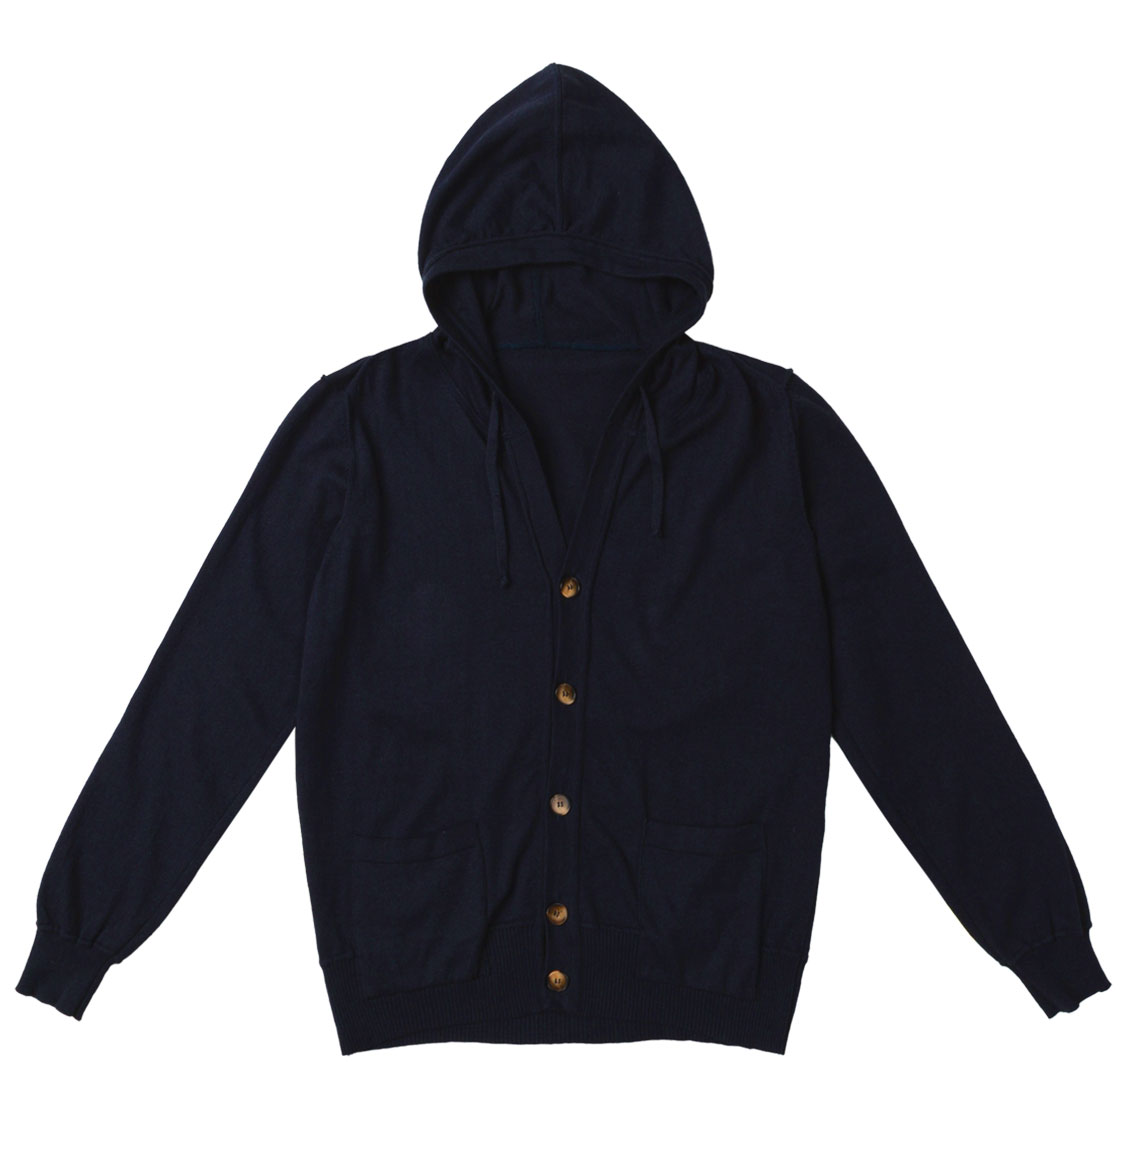 Cotton Blend Knitted Hooded Sweater Navy Blue